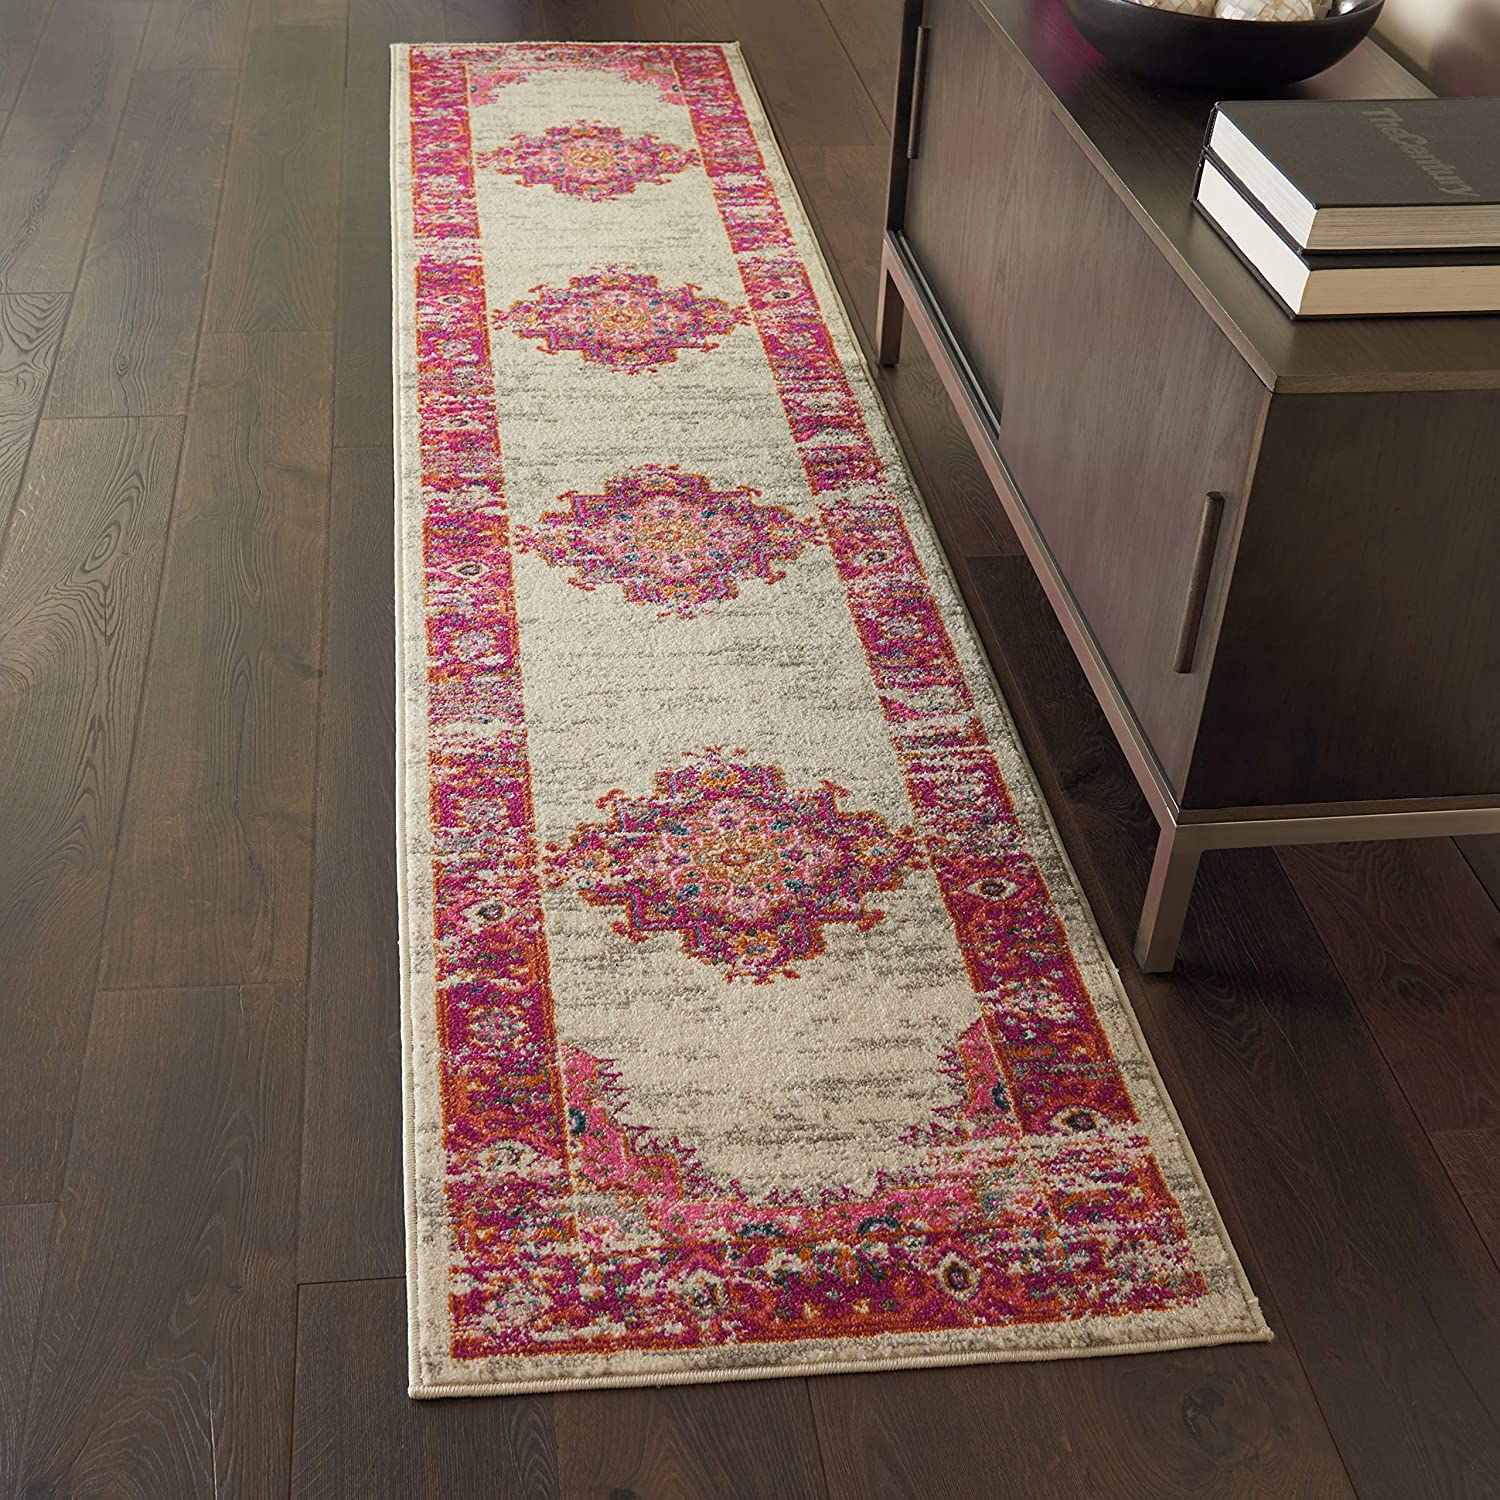 "Nourison Passion Pink and White Vintage Area Rug 2'2"" x 10', 2'2""X10', IVORY/FUSHIA"